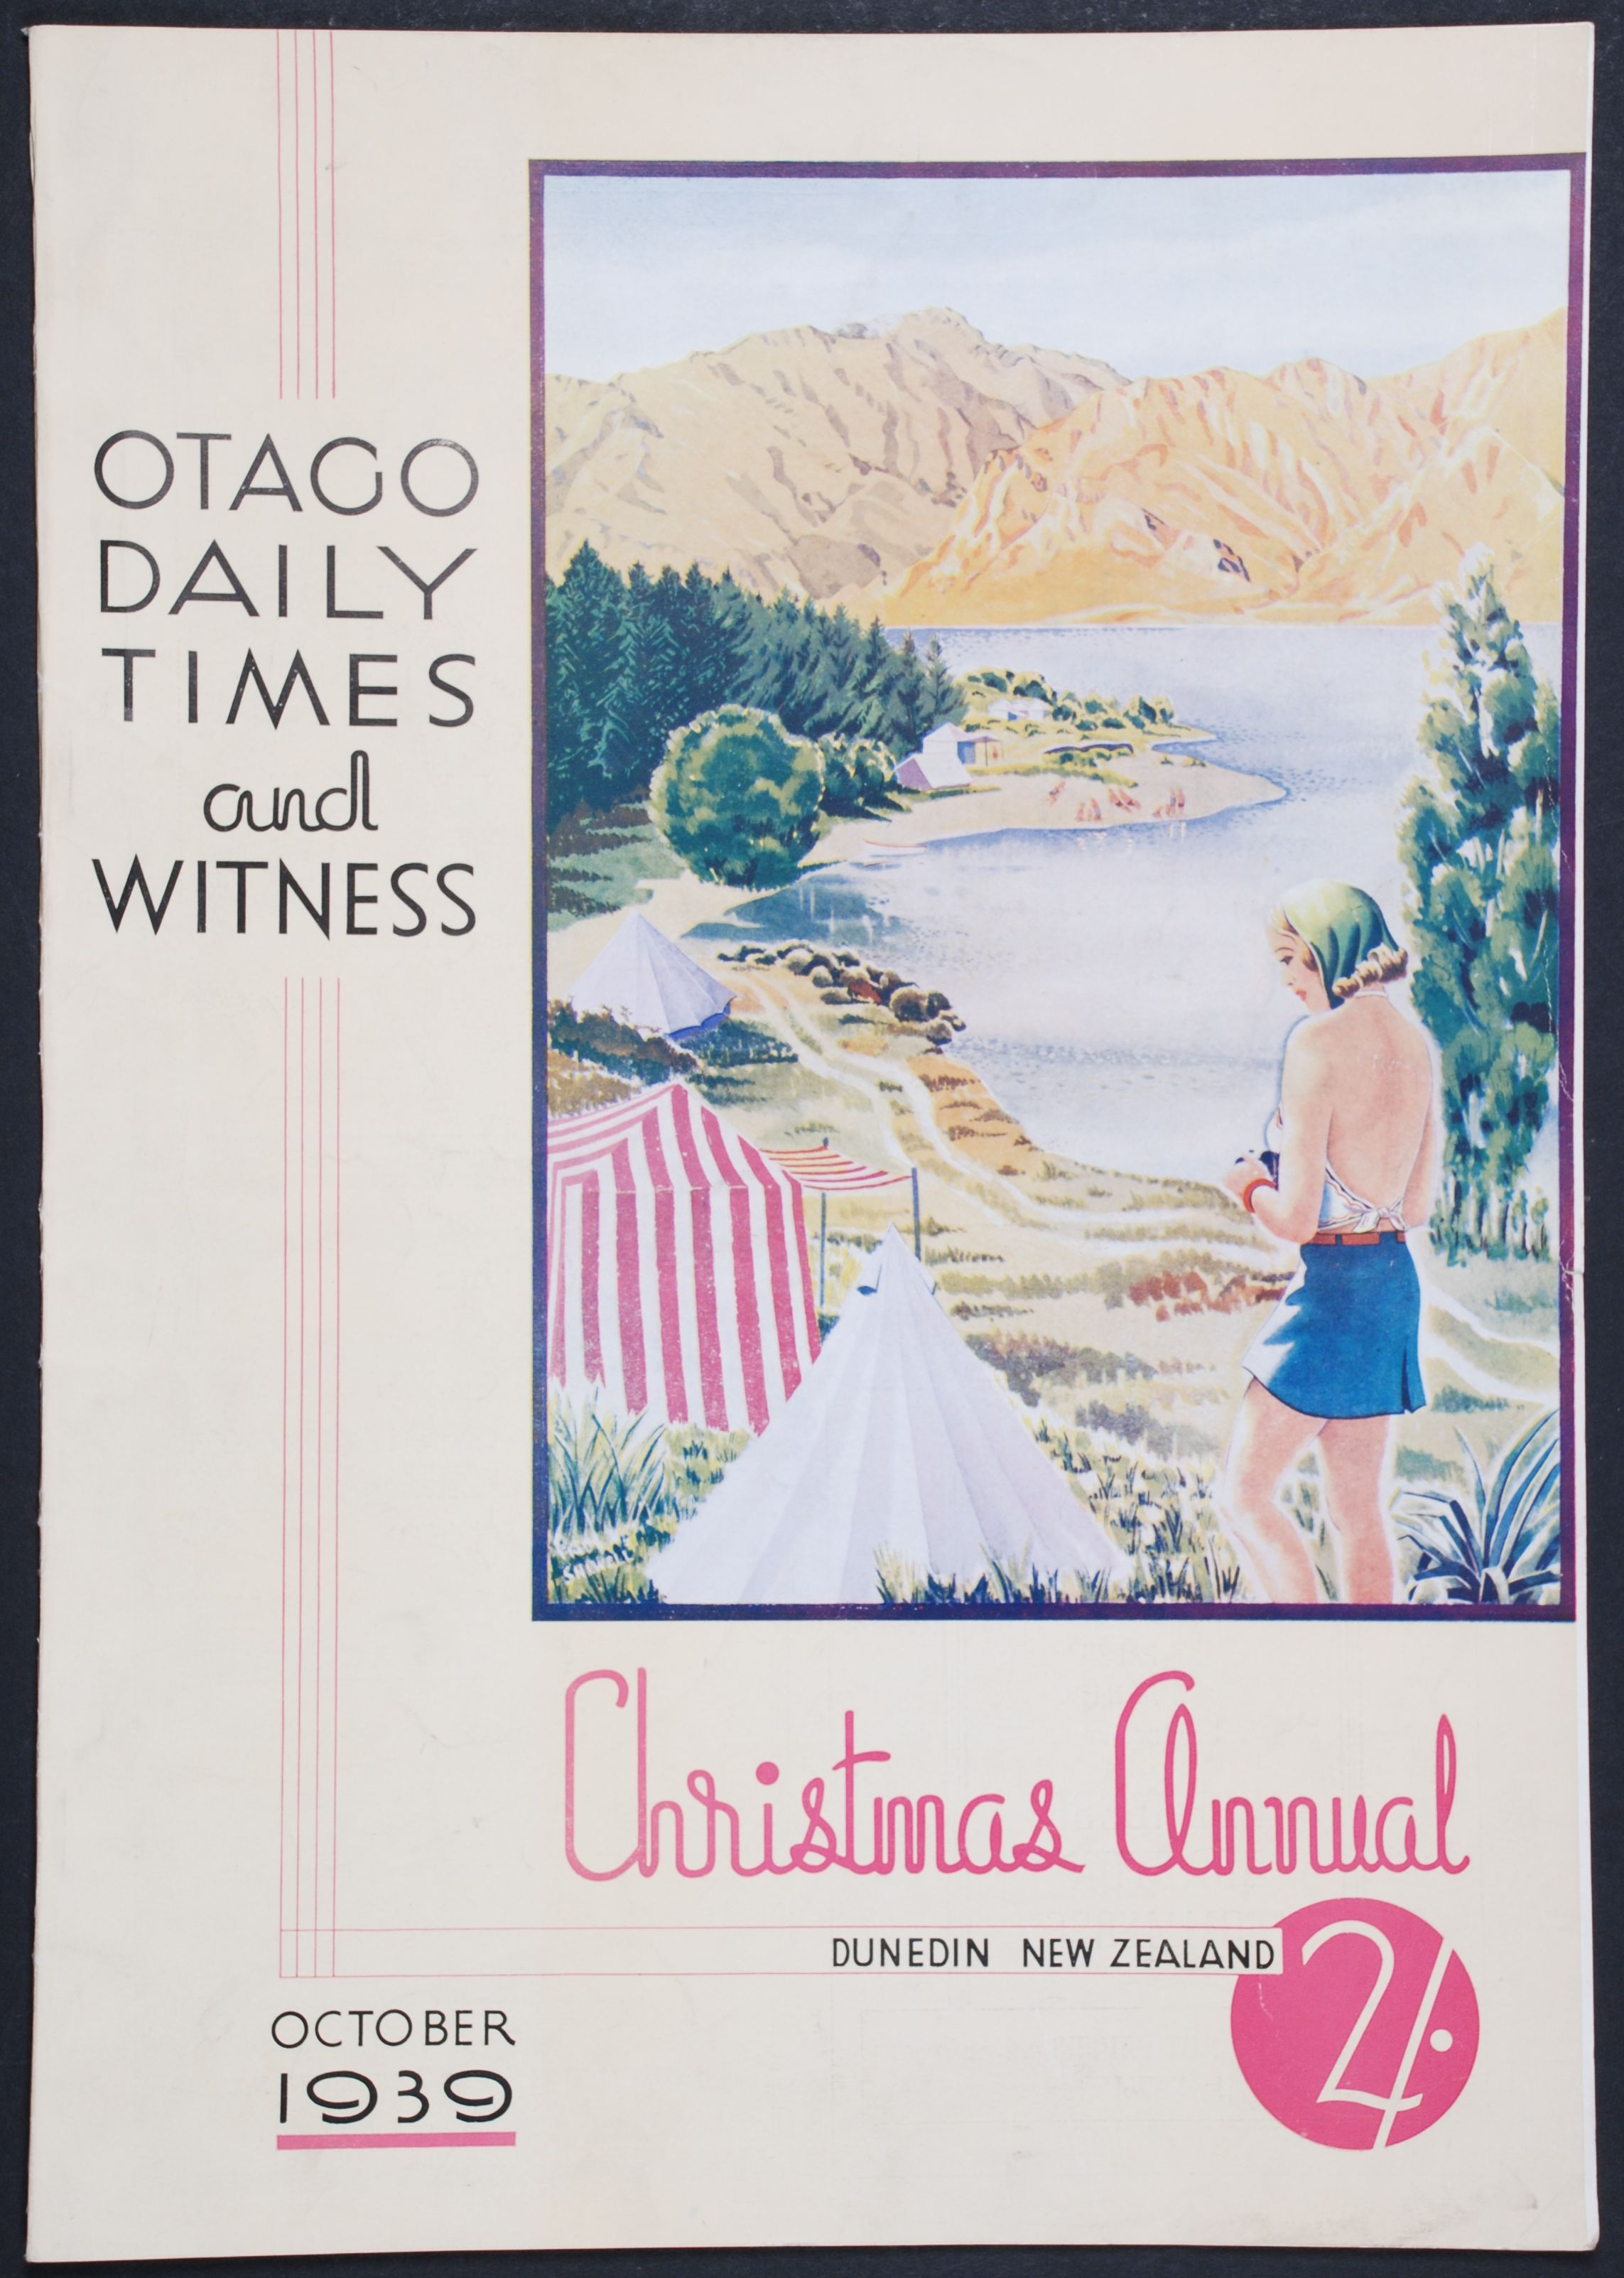 The Otago Daily Times & Witness. Christmas Number, 1939.